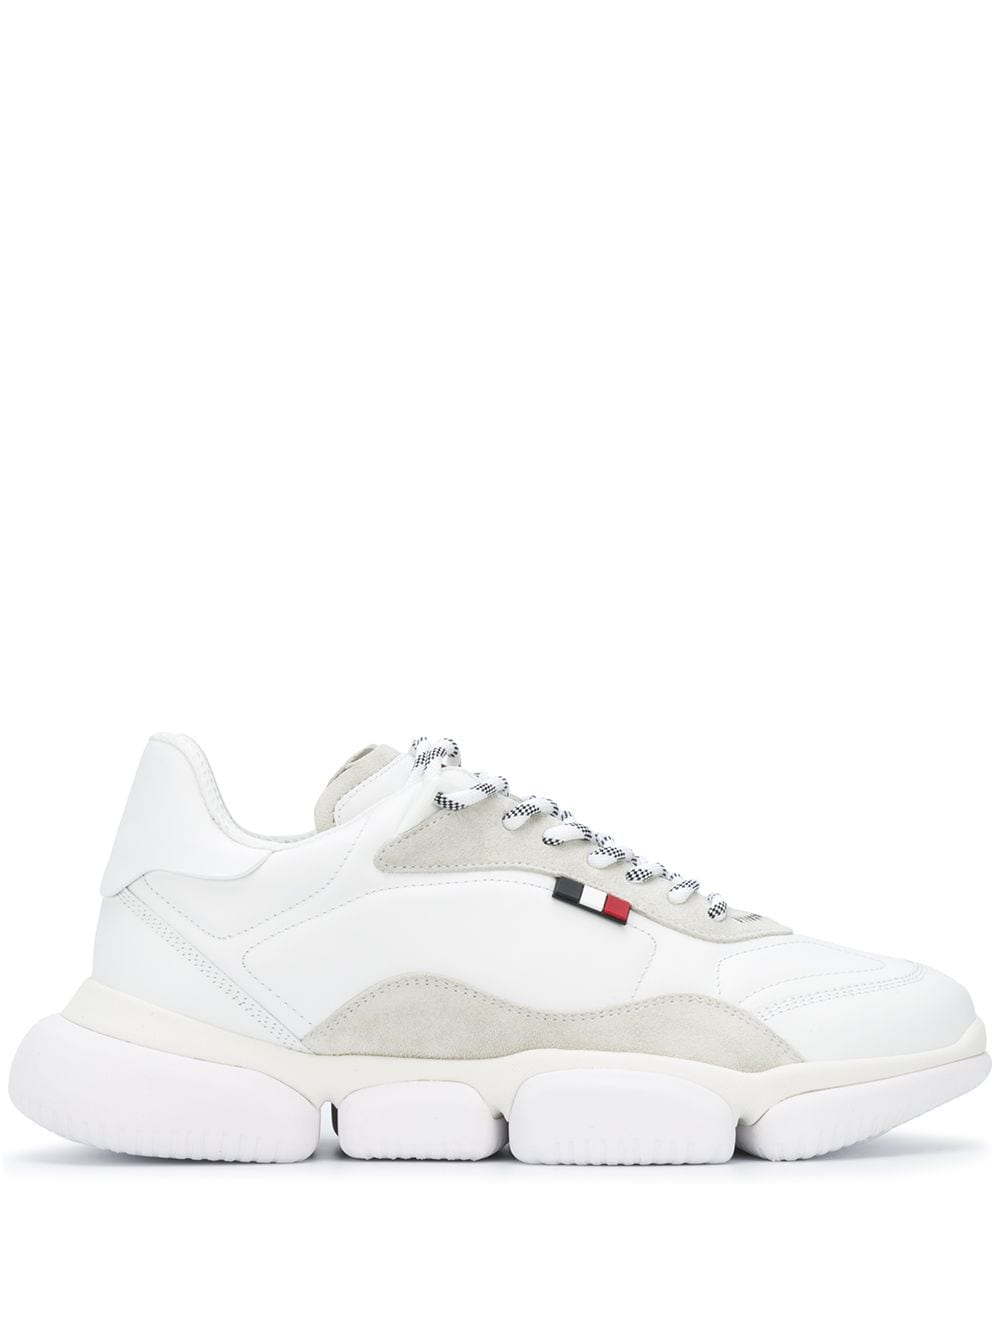 MONCLER Bubble 2 Sneaker White - Maison De Fashion